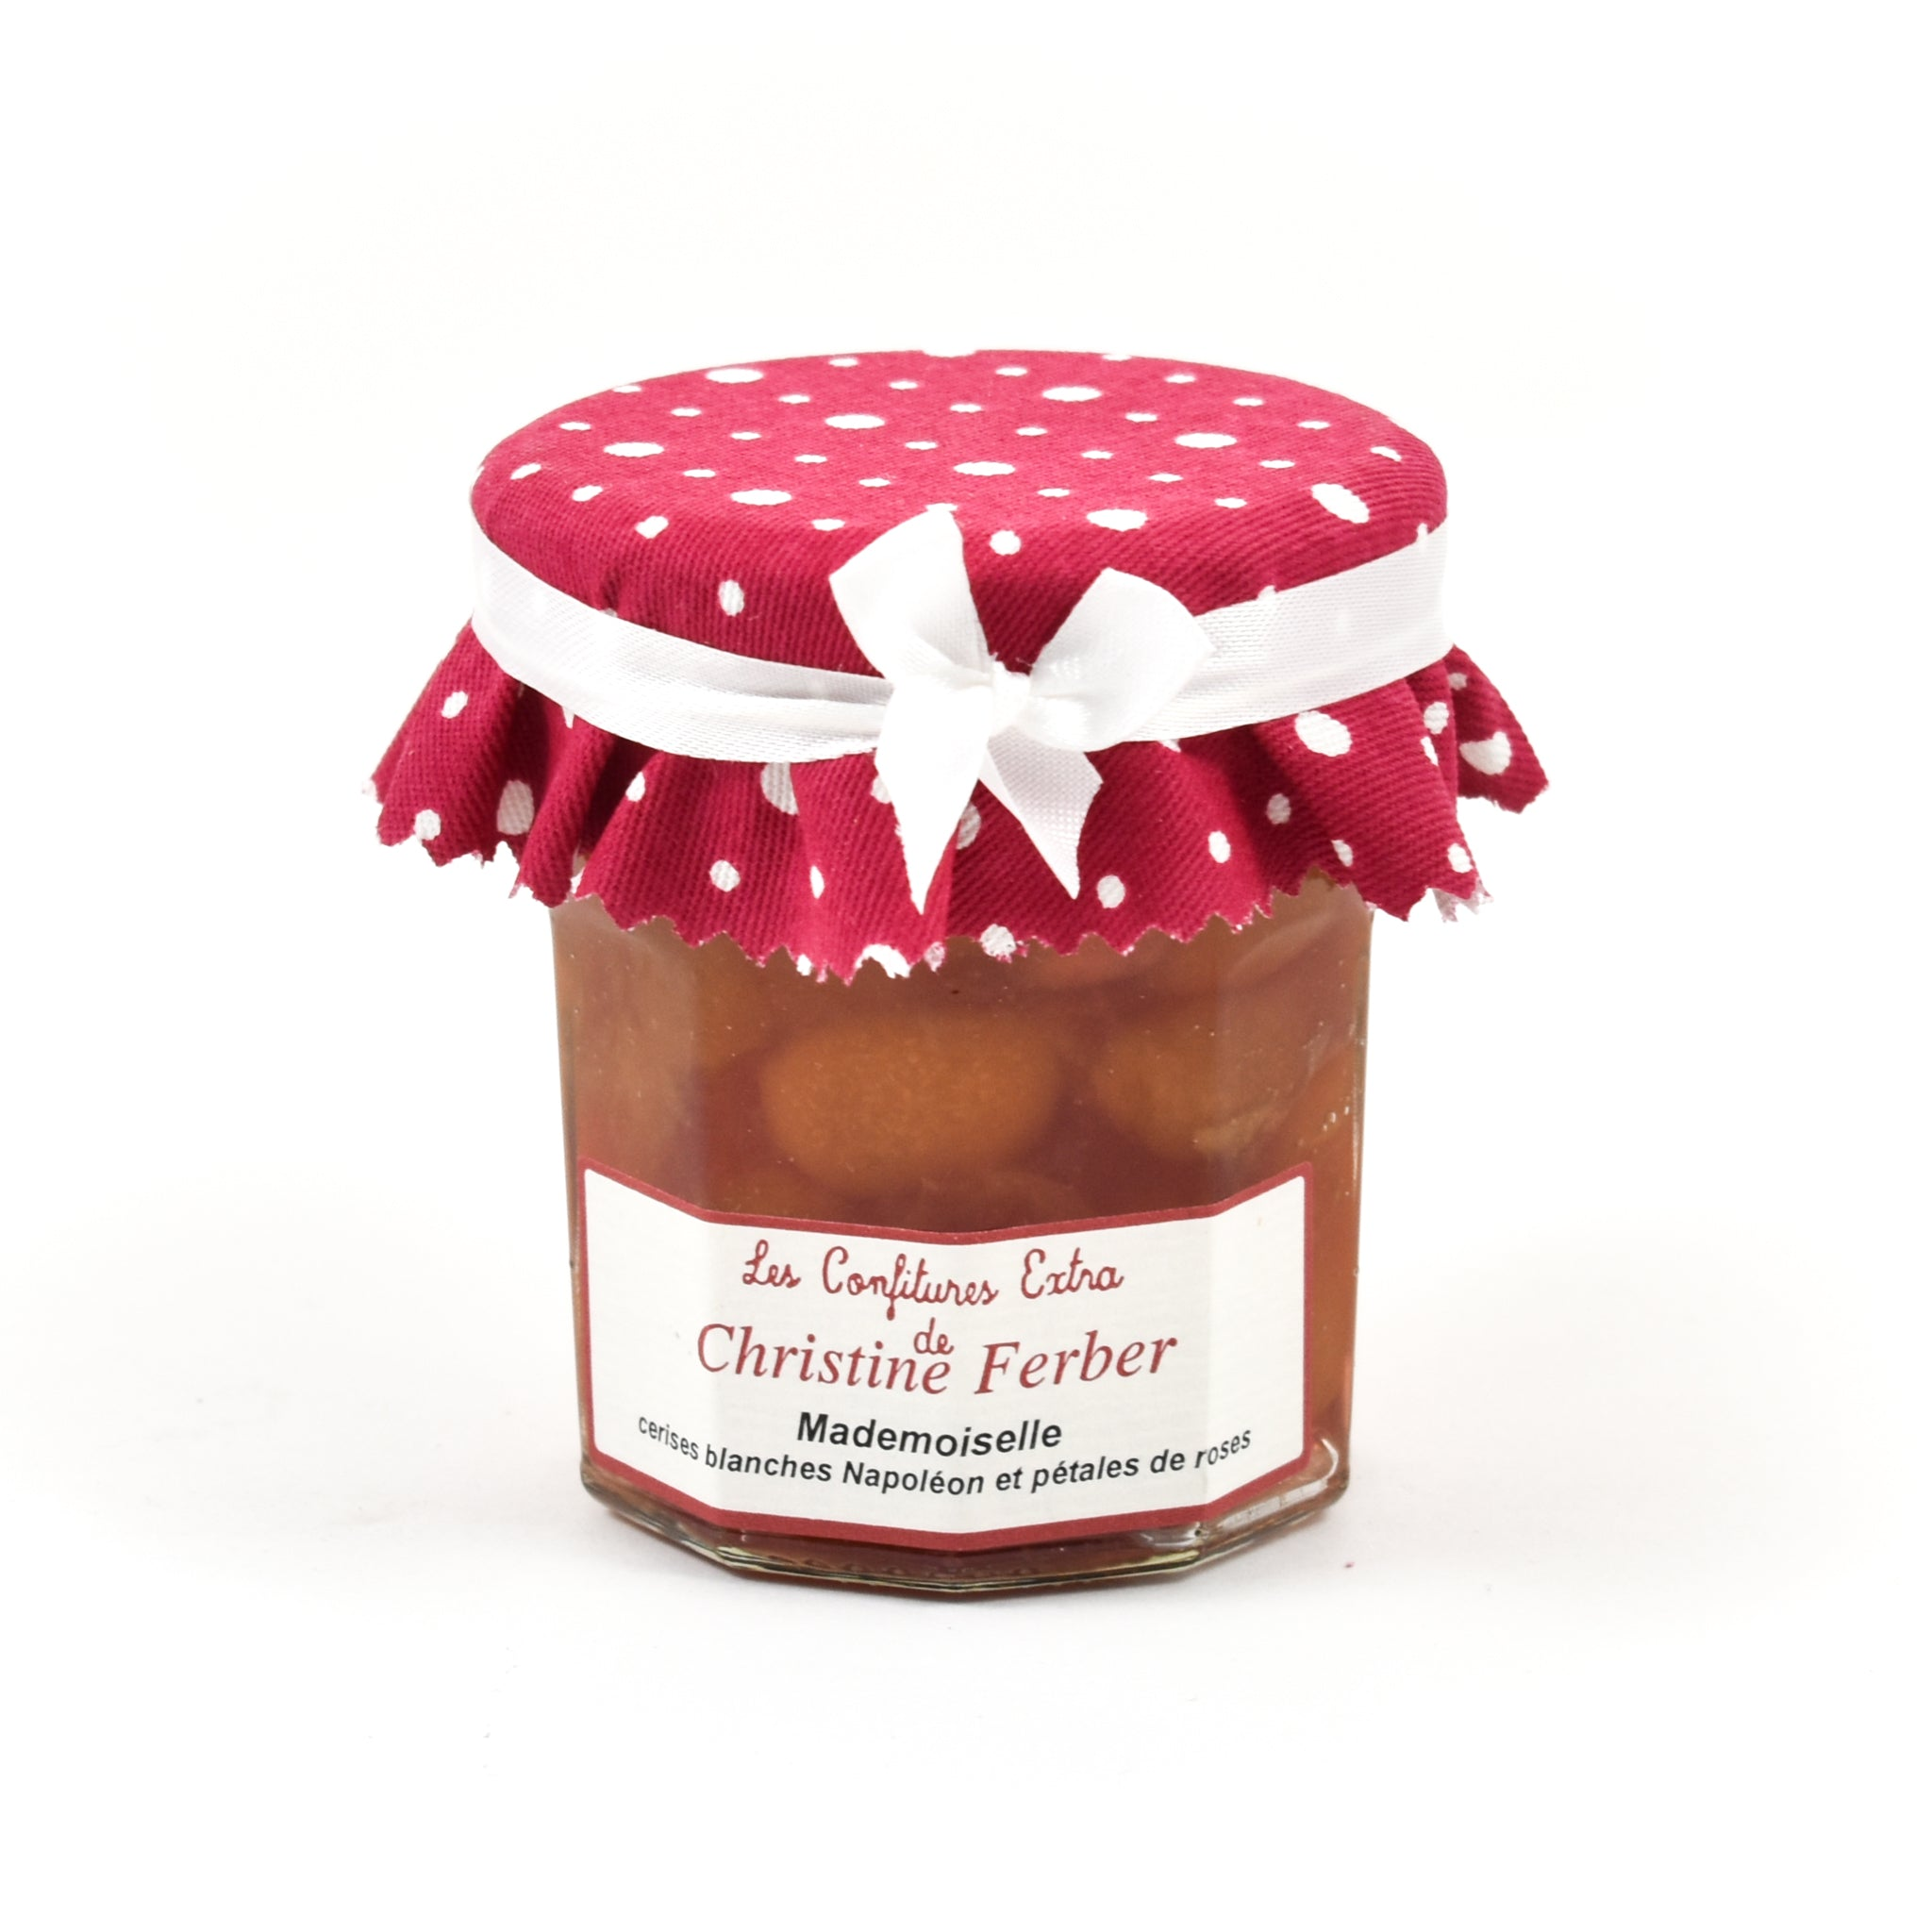 "Christine Ferber""Mademoiselle"" White Cherry & Rose Petal Jam 220g Ingredients Jam Honey & Preserves French Food"